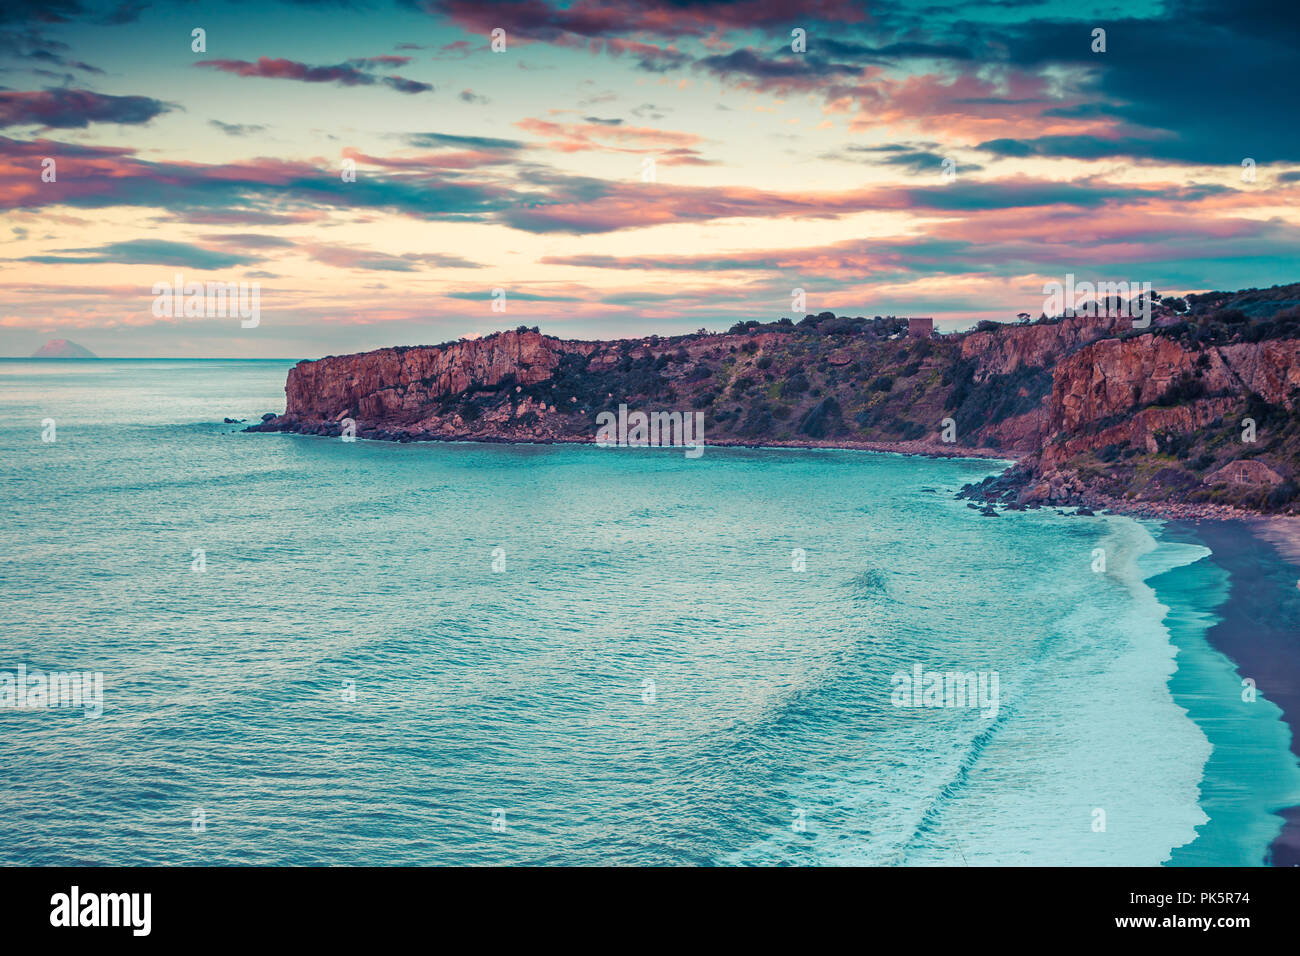 Dramatic spring sunset on the beach Torre Conca. View of Rais Gerbi cape,  Mediterranean sea, Sicily, Italy, Europe. Instagram toning. - Stock Image